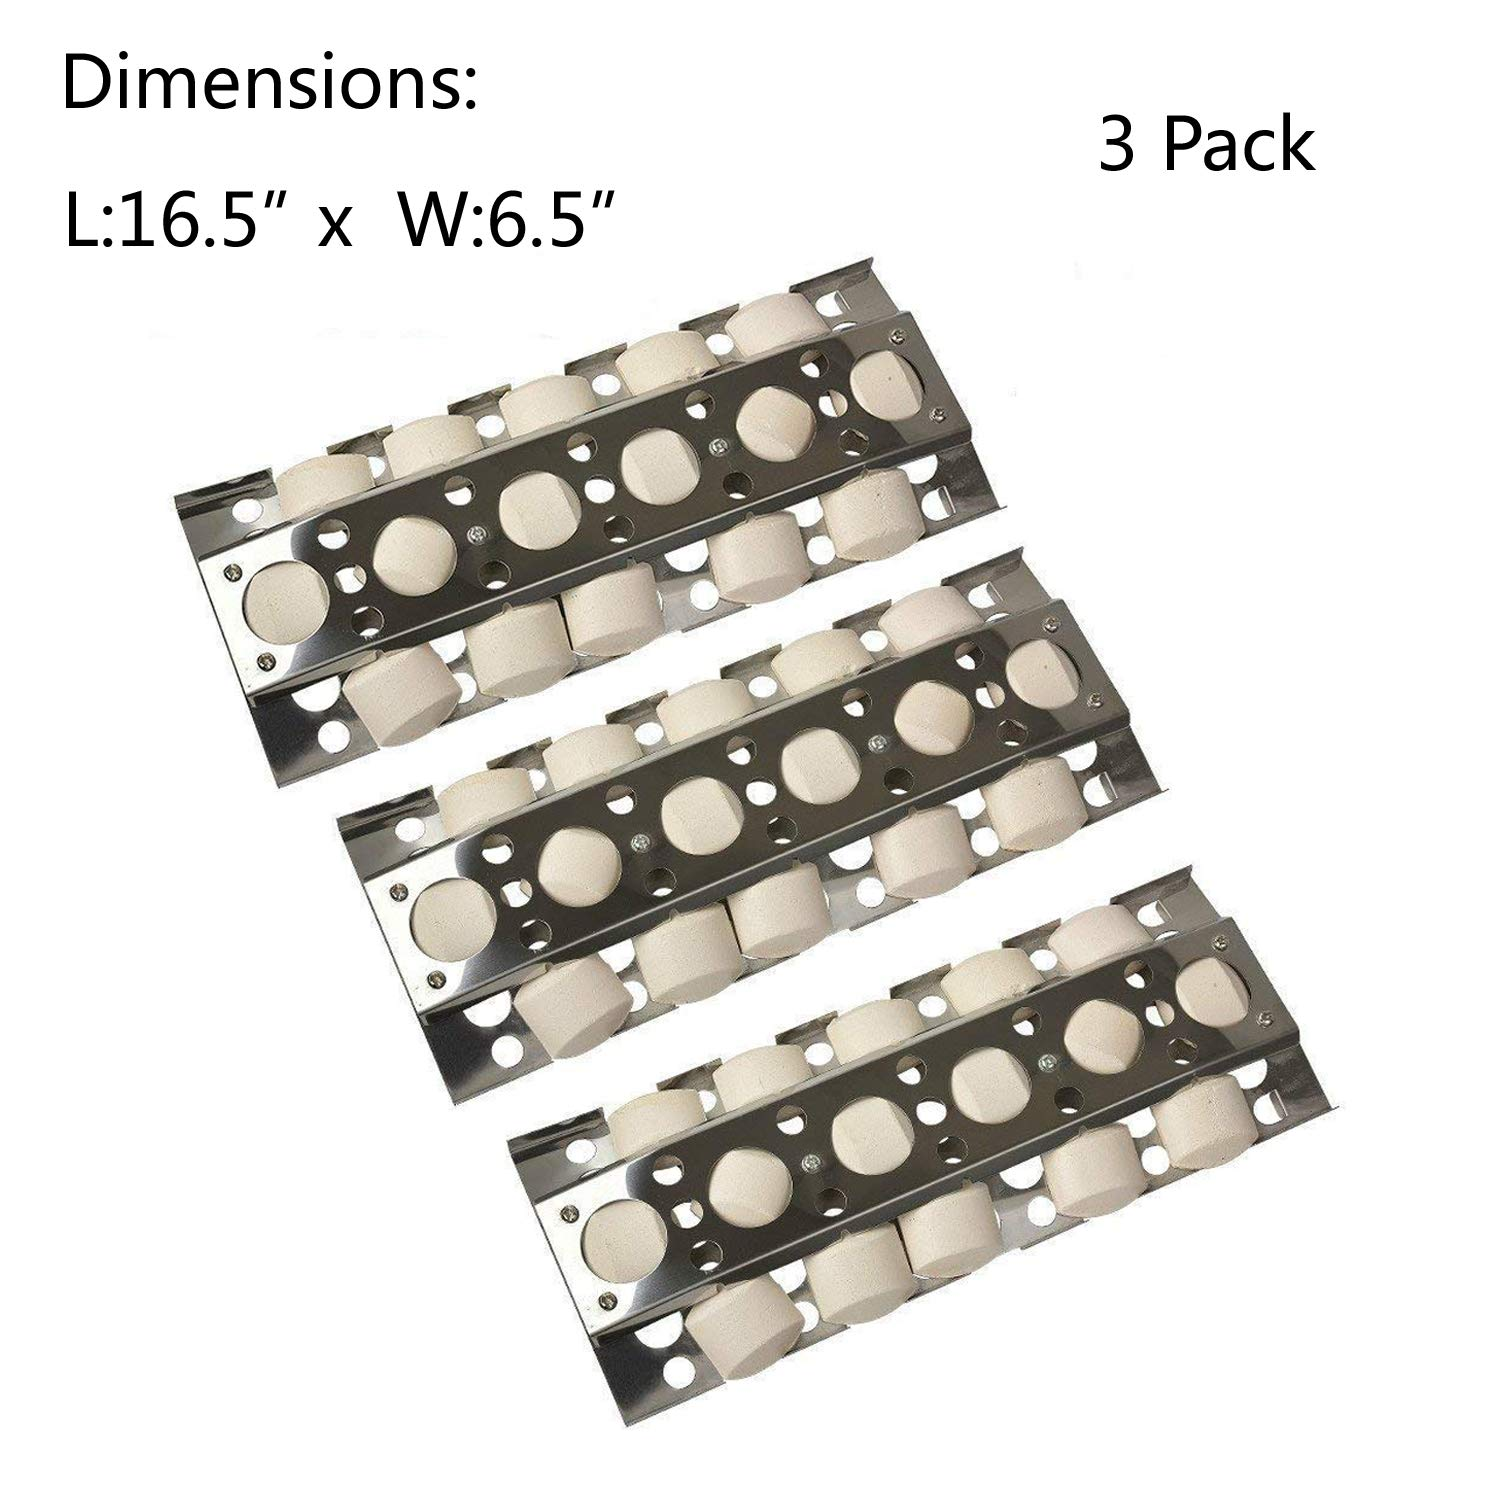 GasSaf Heat Plate Replacement for Select Turbo Gas Grill Models, 16.5 inch 3-Pack Stainless Steel Heat Plate, Heat Tent, Burner Cover, Vaporizor Bar and Flavorizer Bar(16 1/2x 6 1/2inch)(3-Pack)  by GasSaf (Image #1)